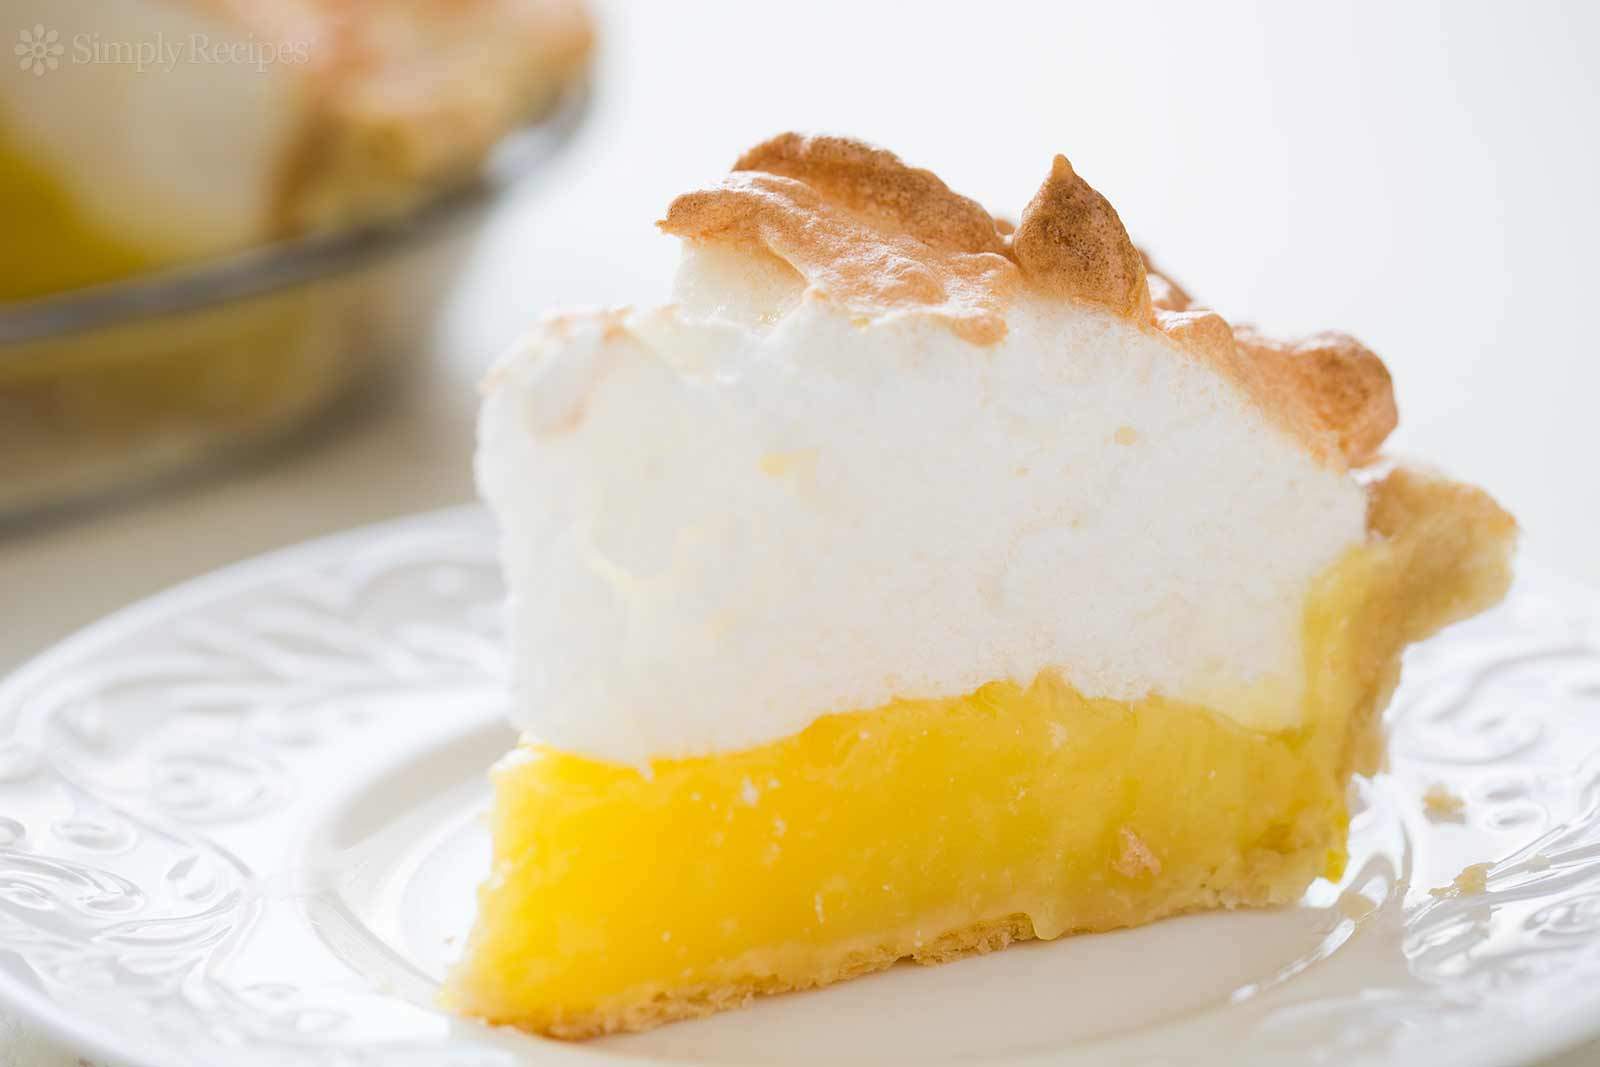 lemon-meringue-pie-horiz-b-1600